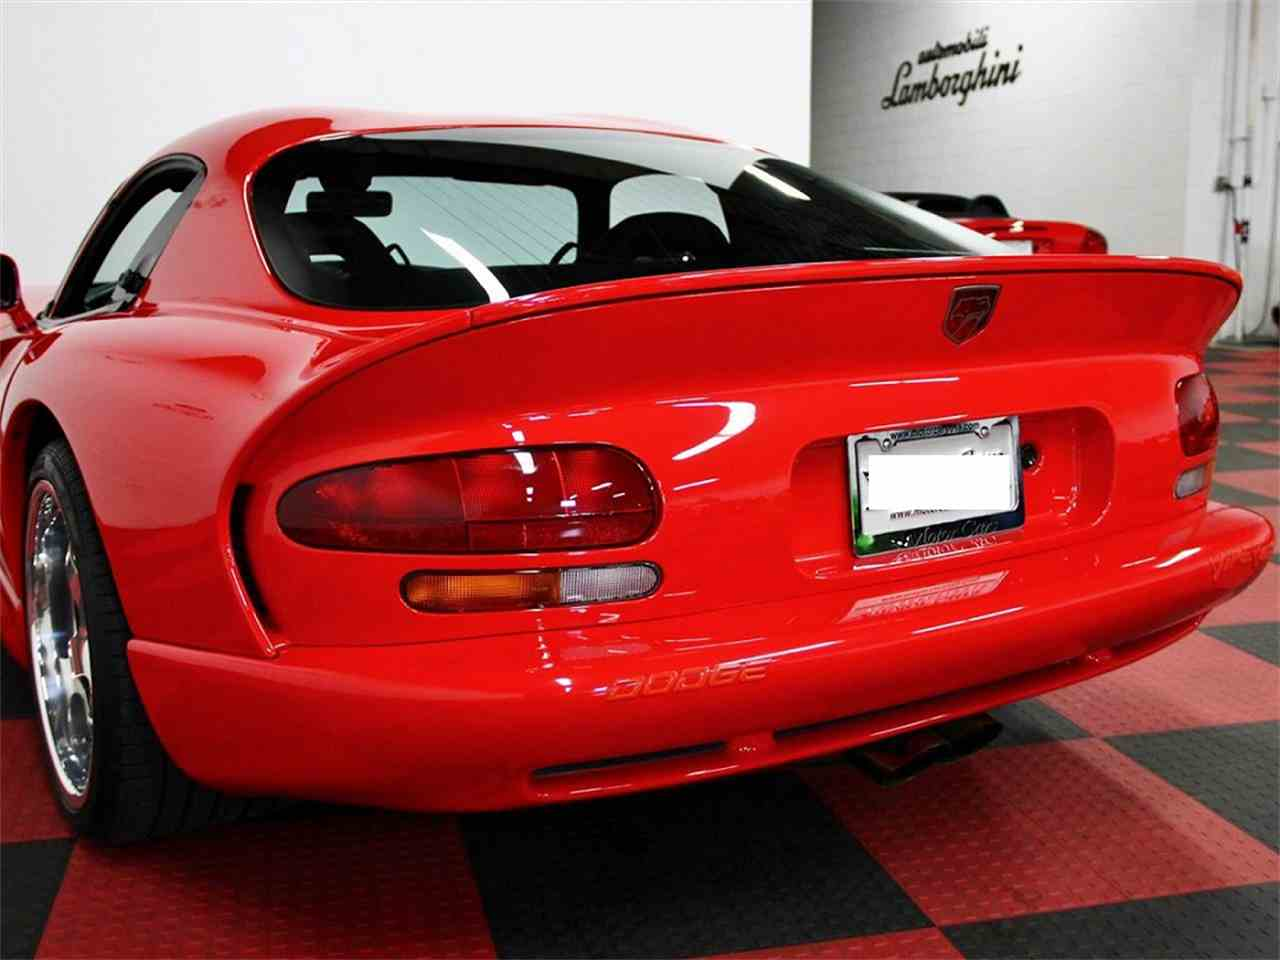 Large Picture of 1998 Viper located in Illinois - $47,000.00 Offered by a Private Seller - LSFT